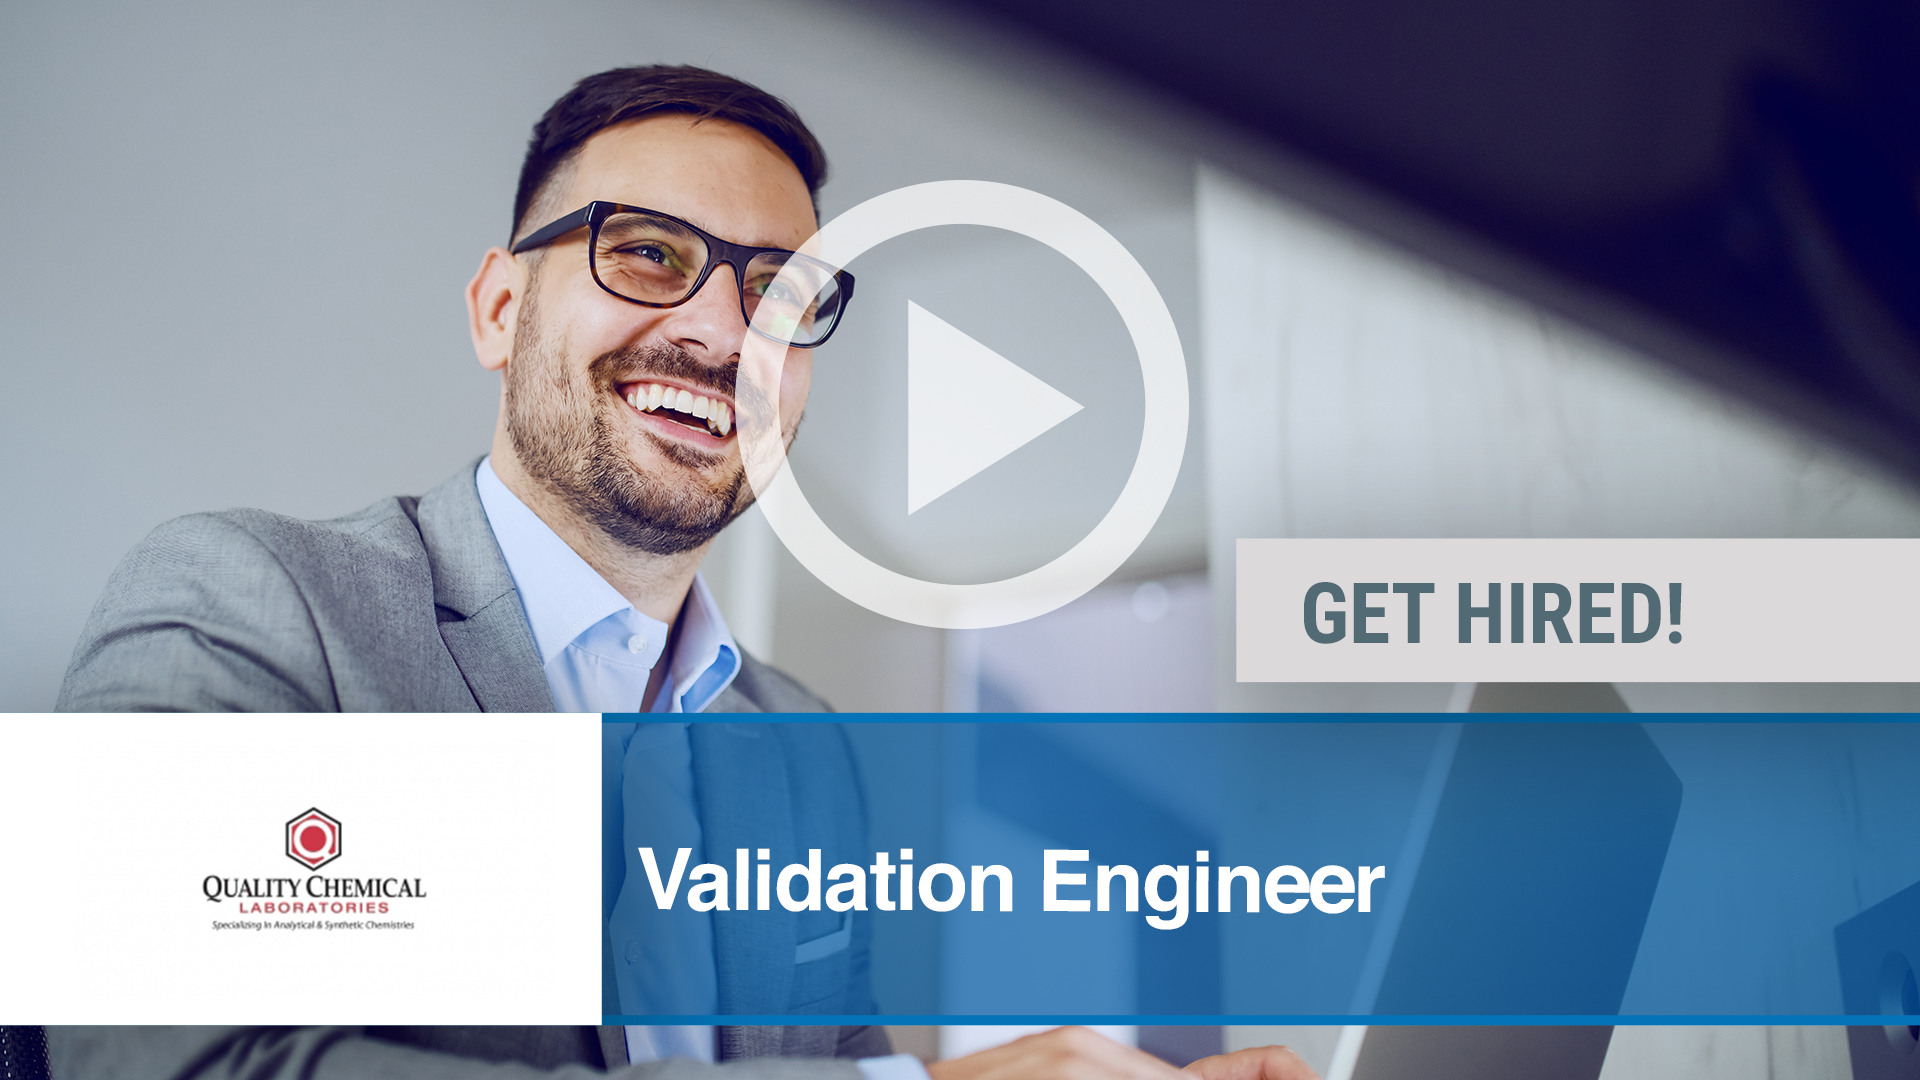 Watch our careers video for available job opening Validation Engineer in Wilmington, NC